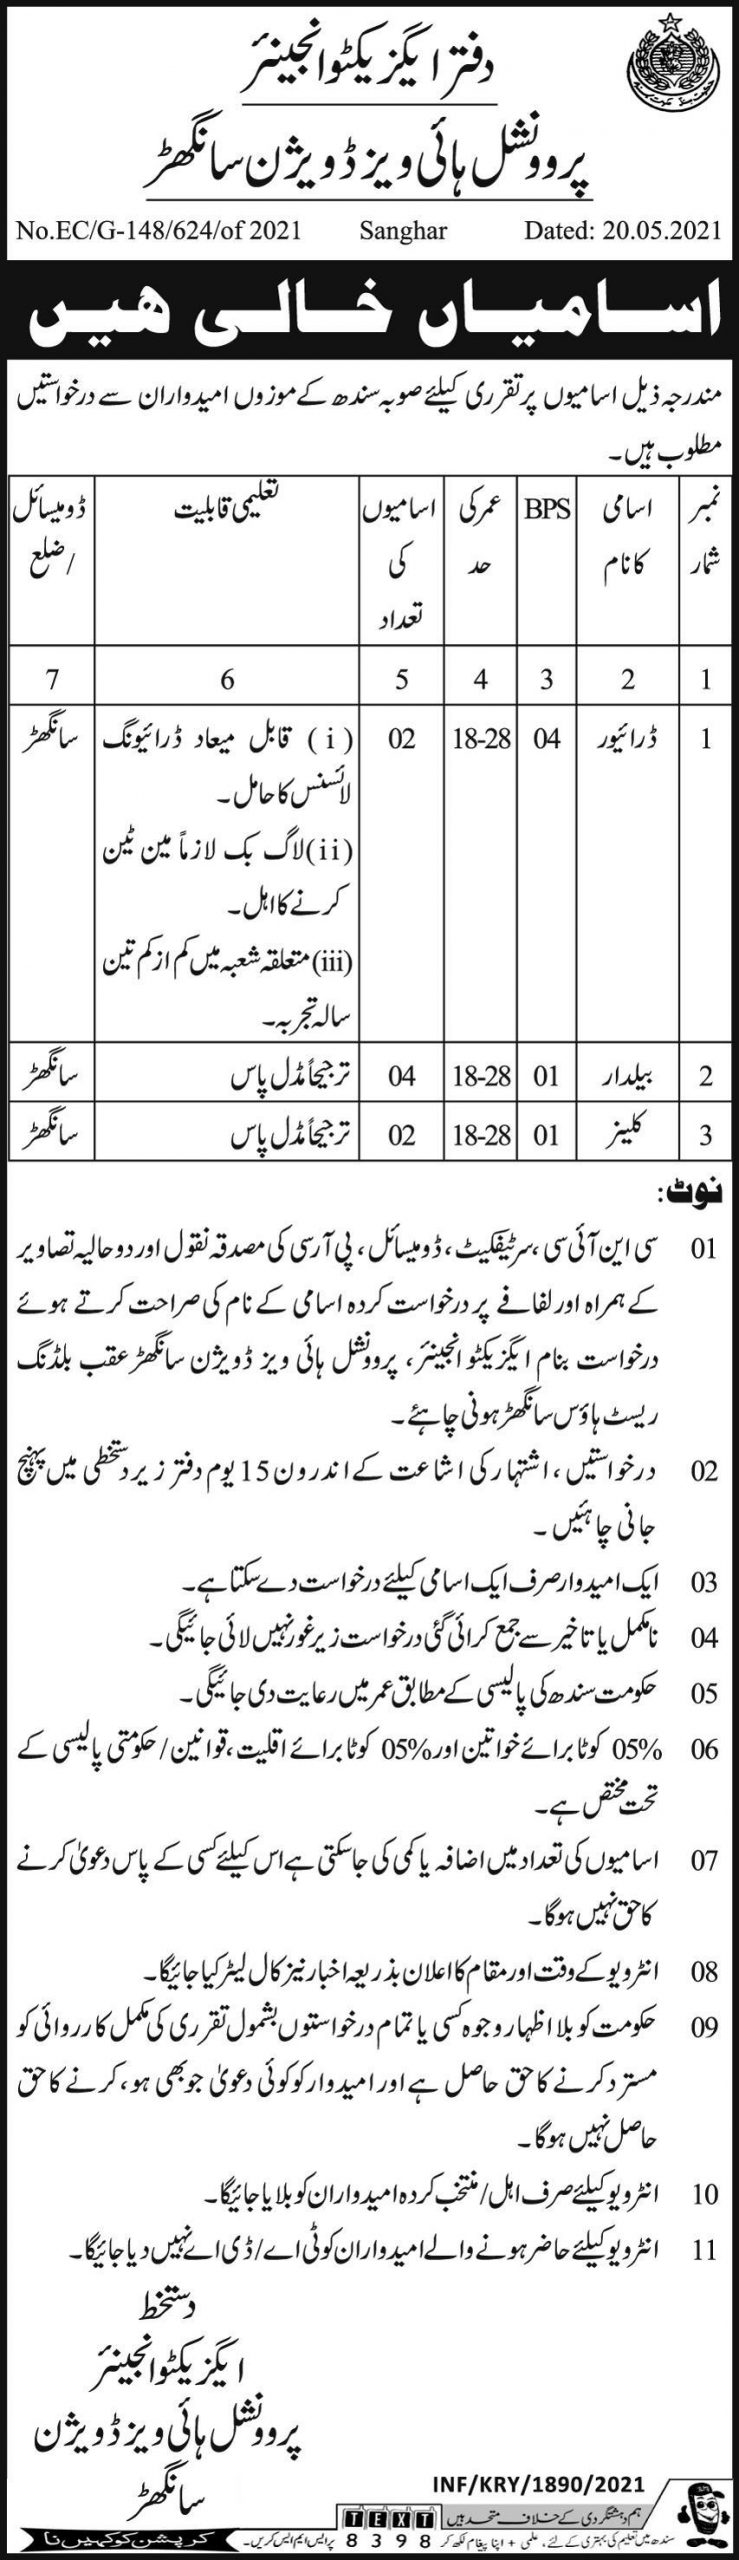 Provincial Buildings Division Sanghar Government Jobs 2021